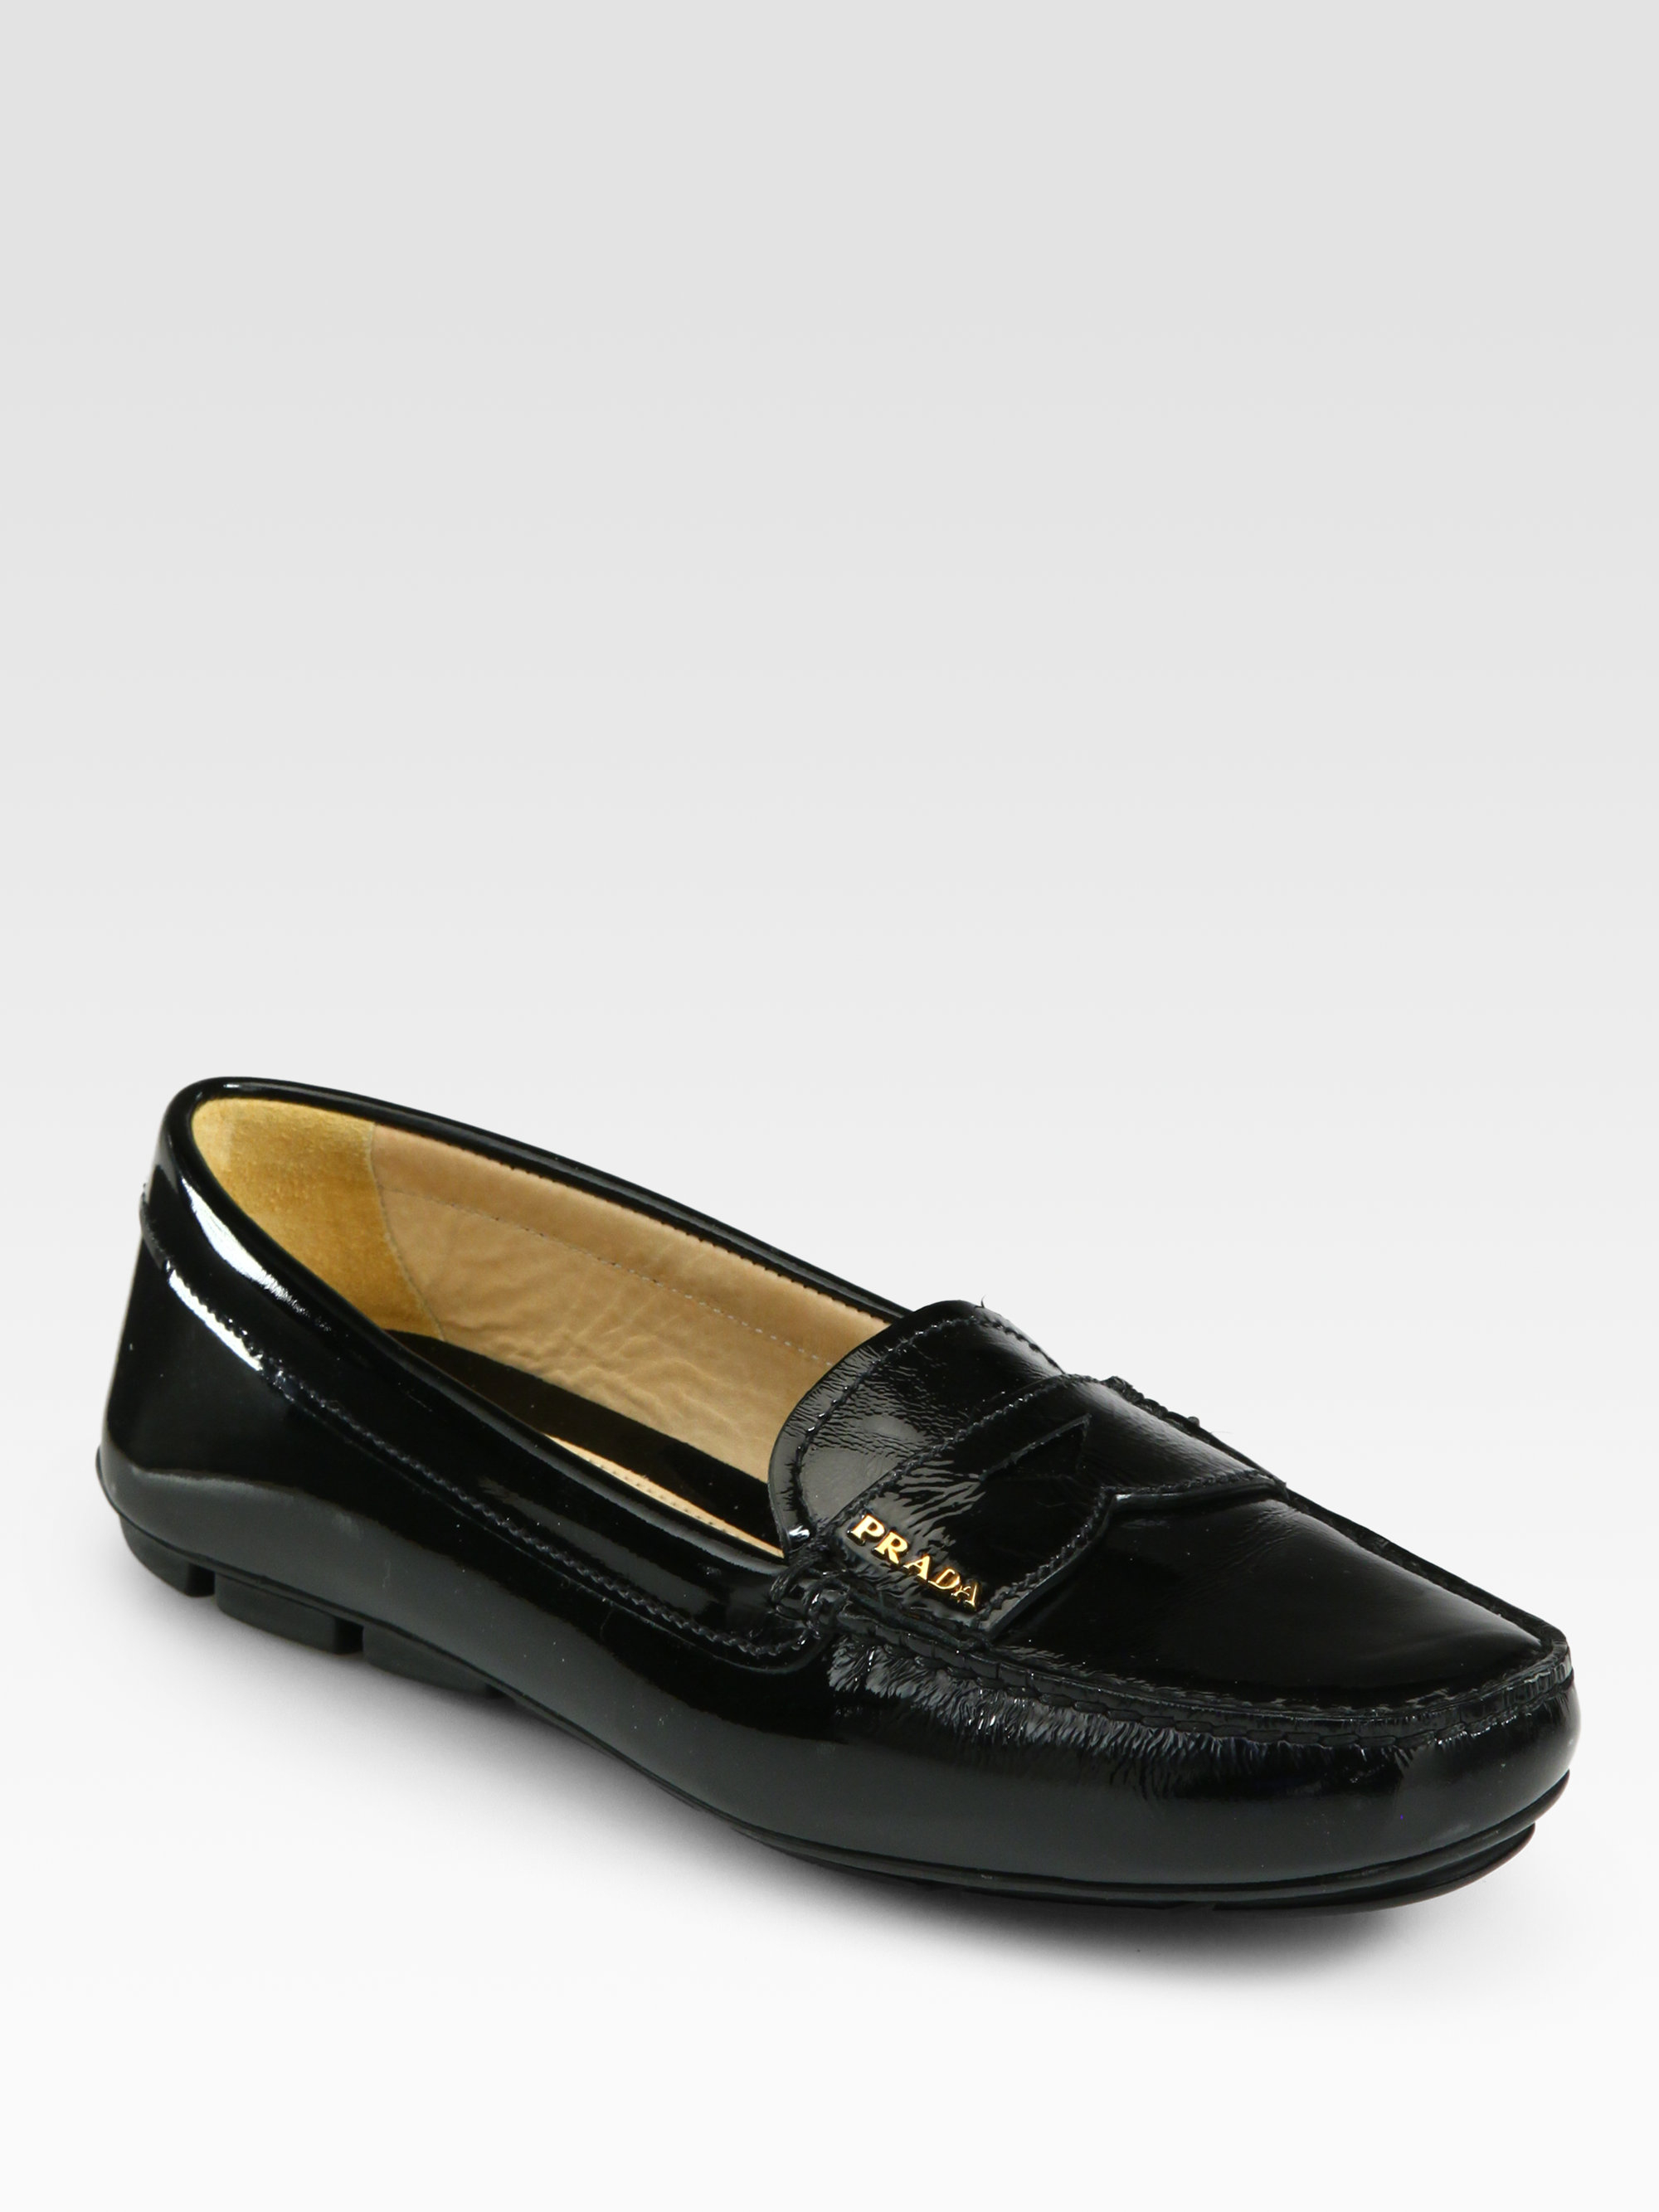 Patent Leather Womens Loafers with FREE Shipping & Exchanges, and a % price guarantee. Choose from a huge selection of Patent Leather Womens Loafers styles.